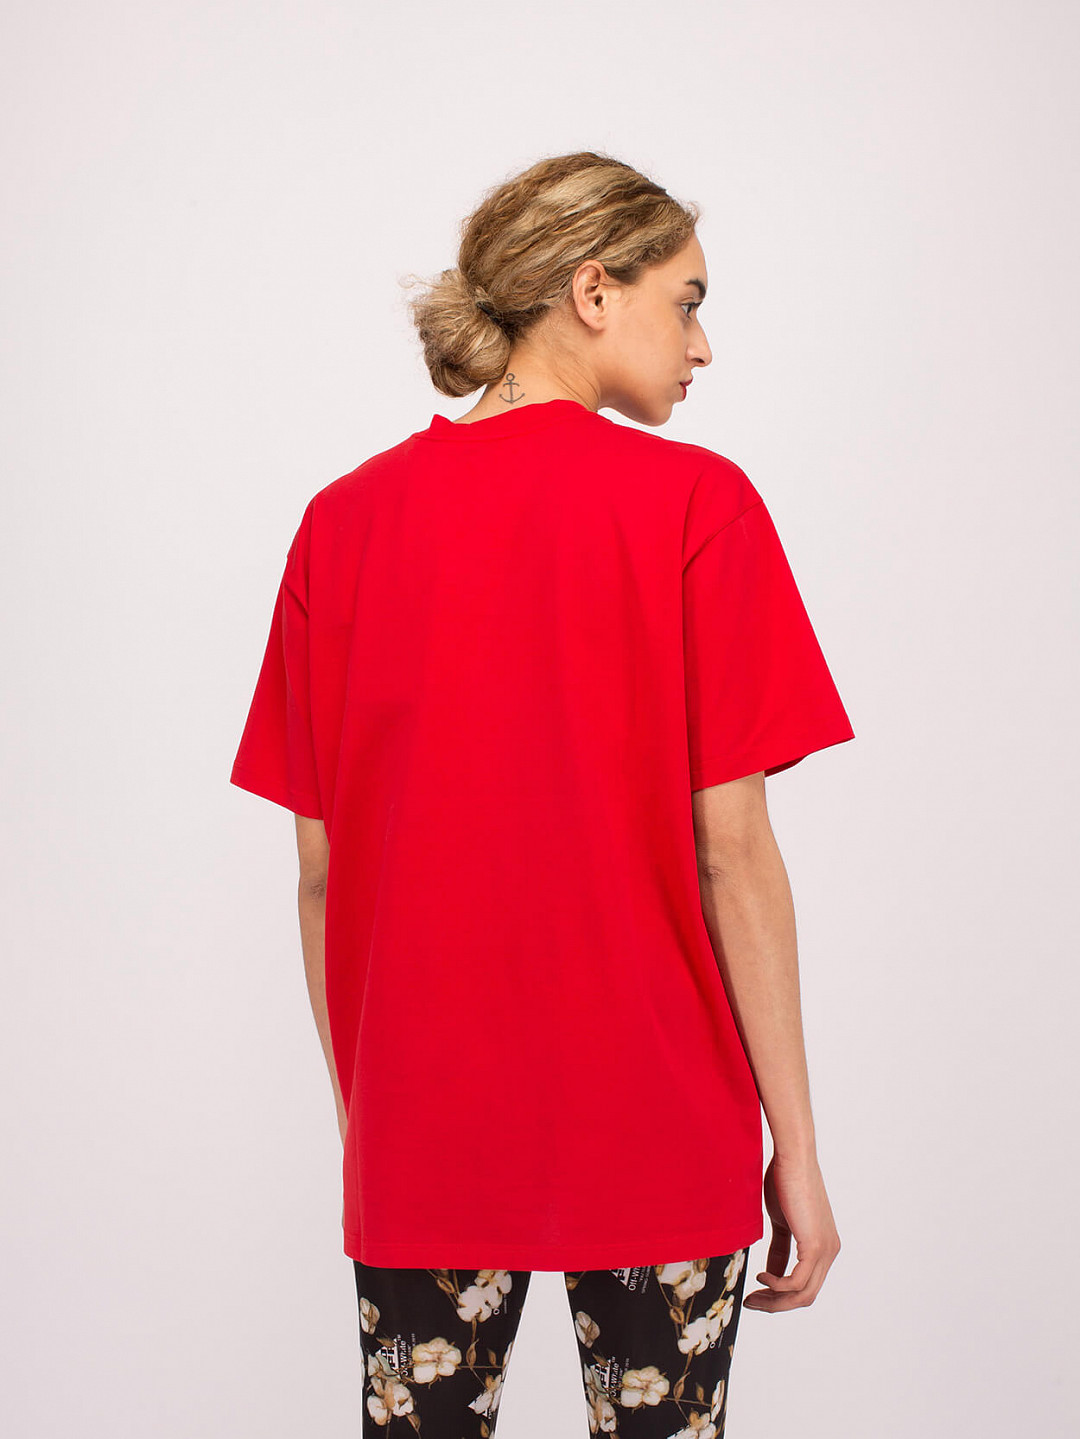 Tee Bambi red